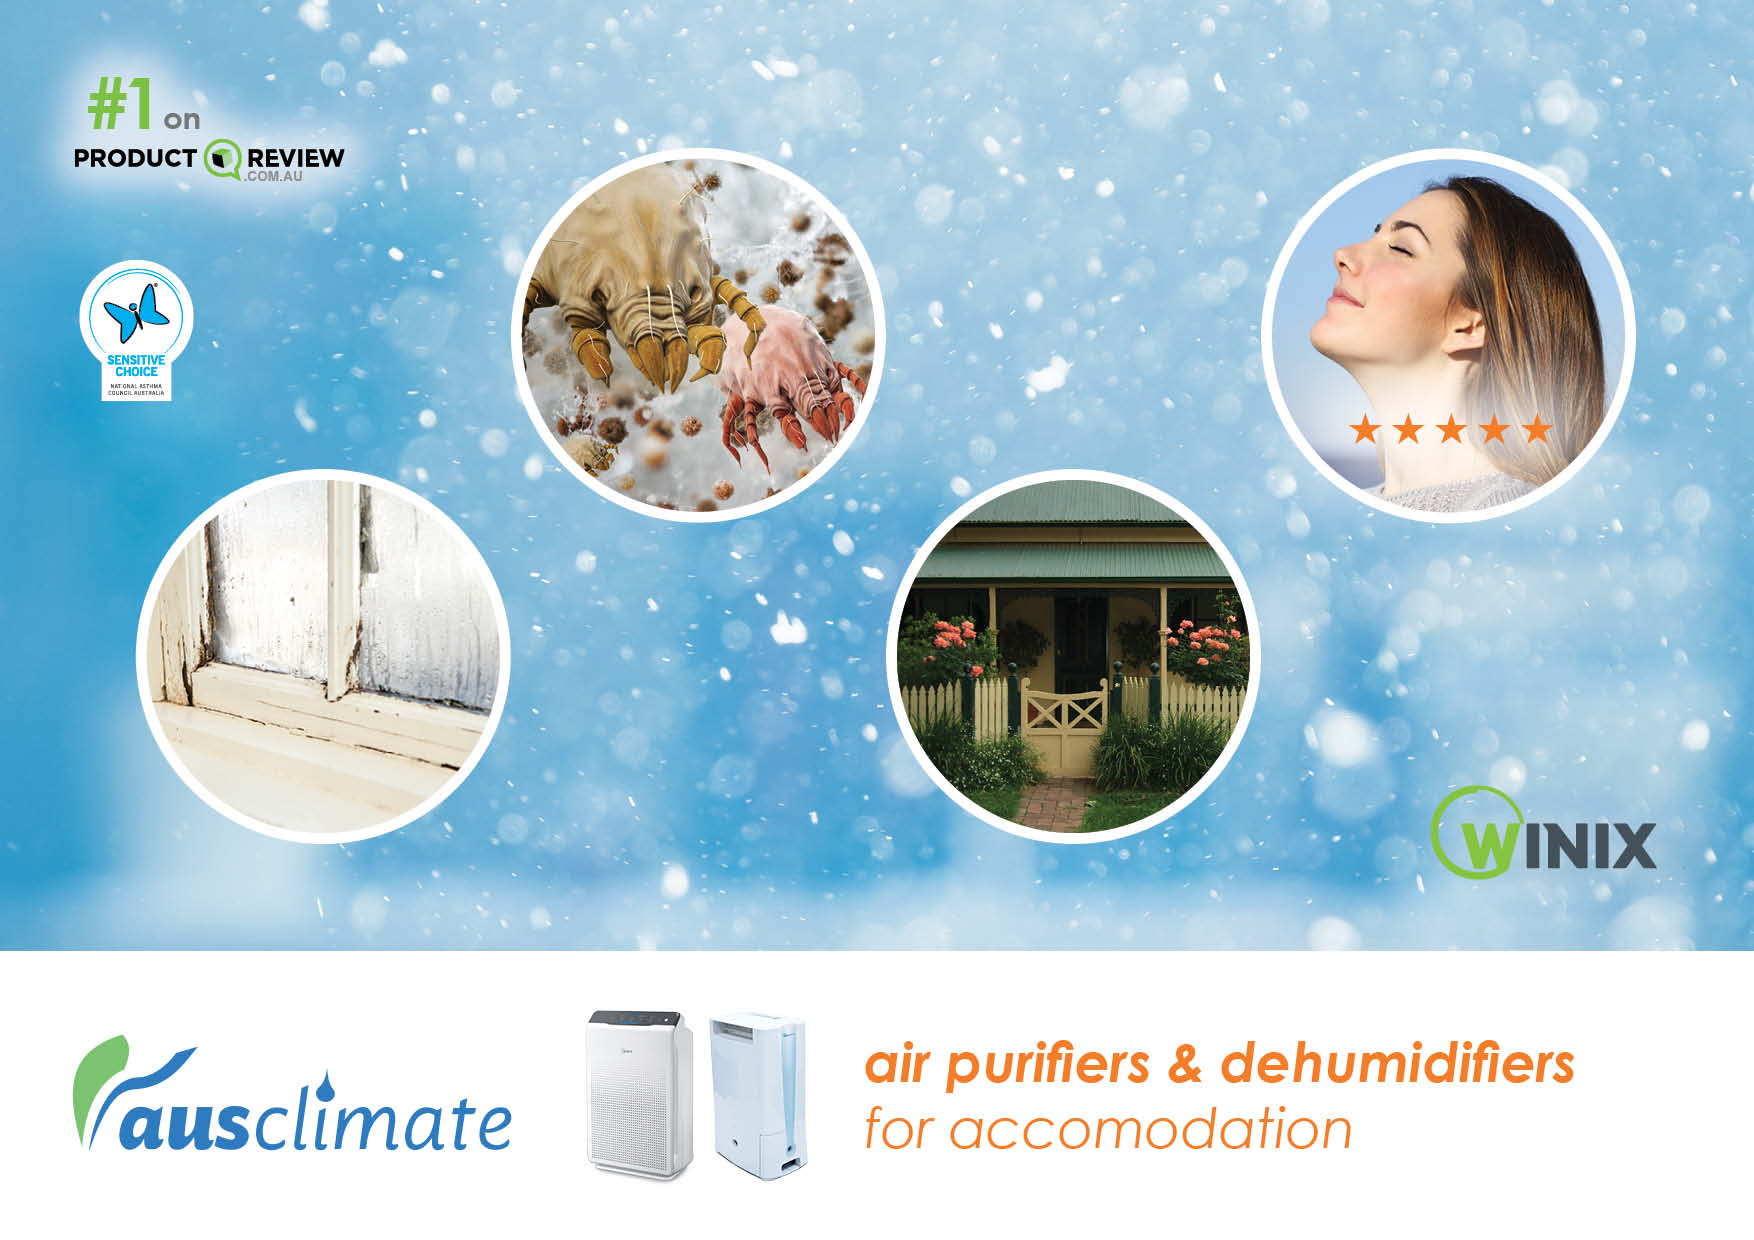 Dehumidifiers and Air Purifiers from Accomodation [Social Media]